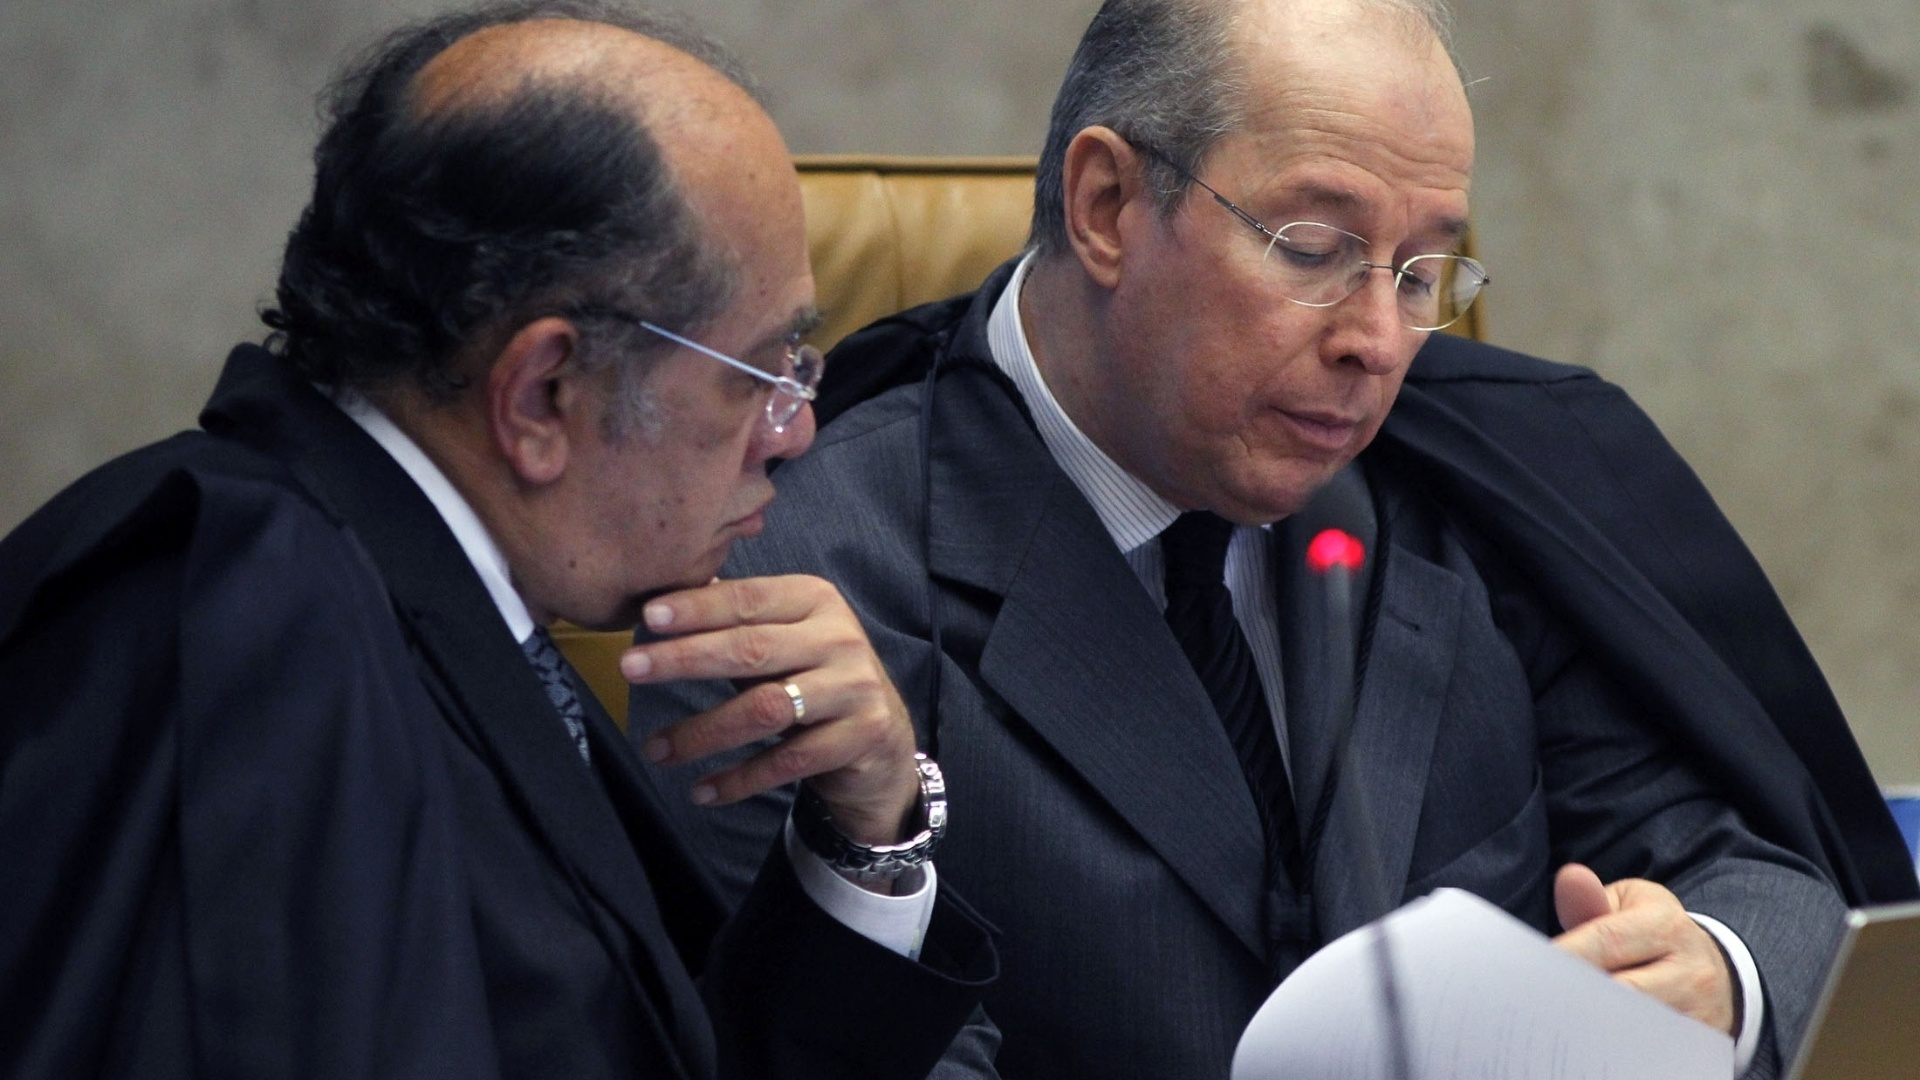 24.out.2012 - Os ministros Gilmar Mendes (esq.) e Celso de Mello acompanham sesso de julgamento do mensalo no Supremo Tribunal Federal. Para Celso de Mello, a pena-base sugerida por Lewandowski lhe 